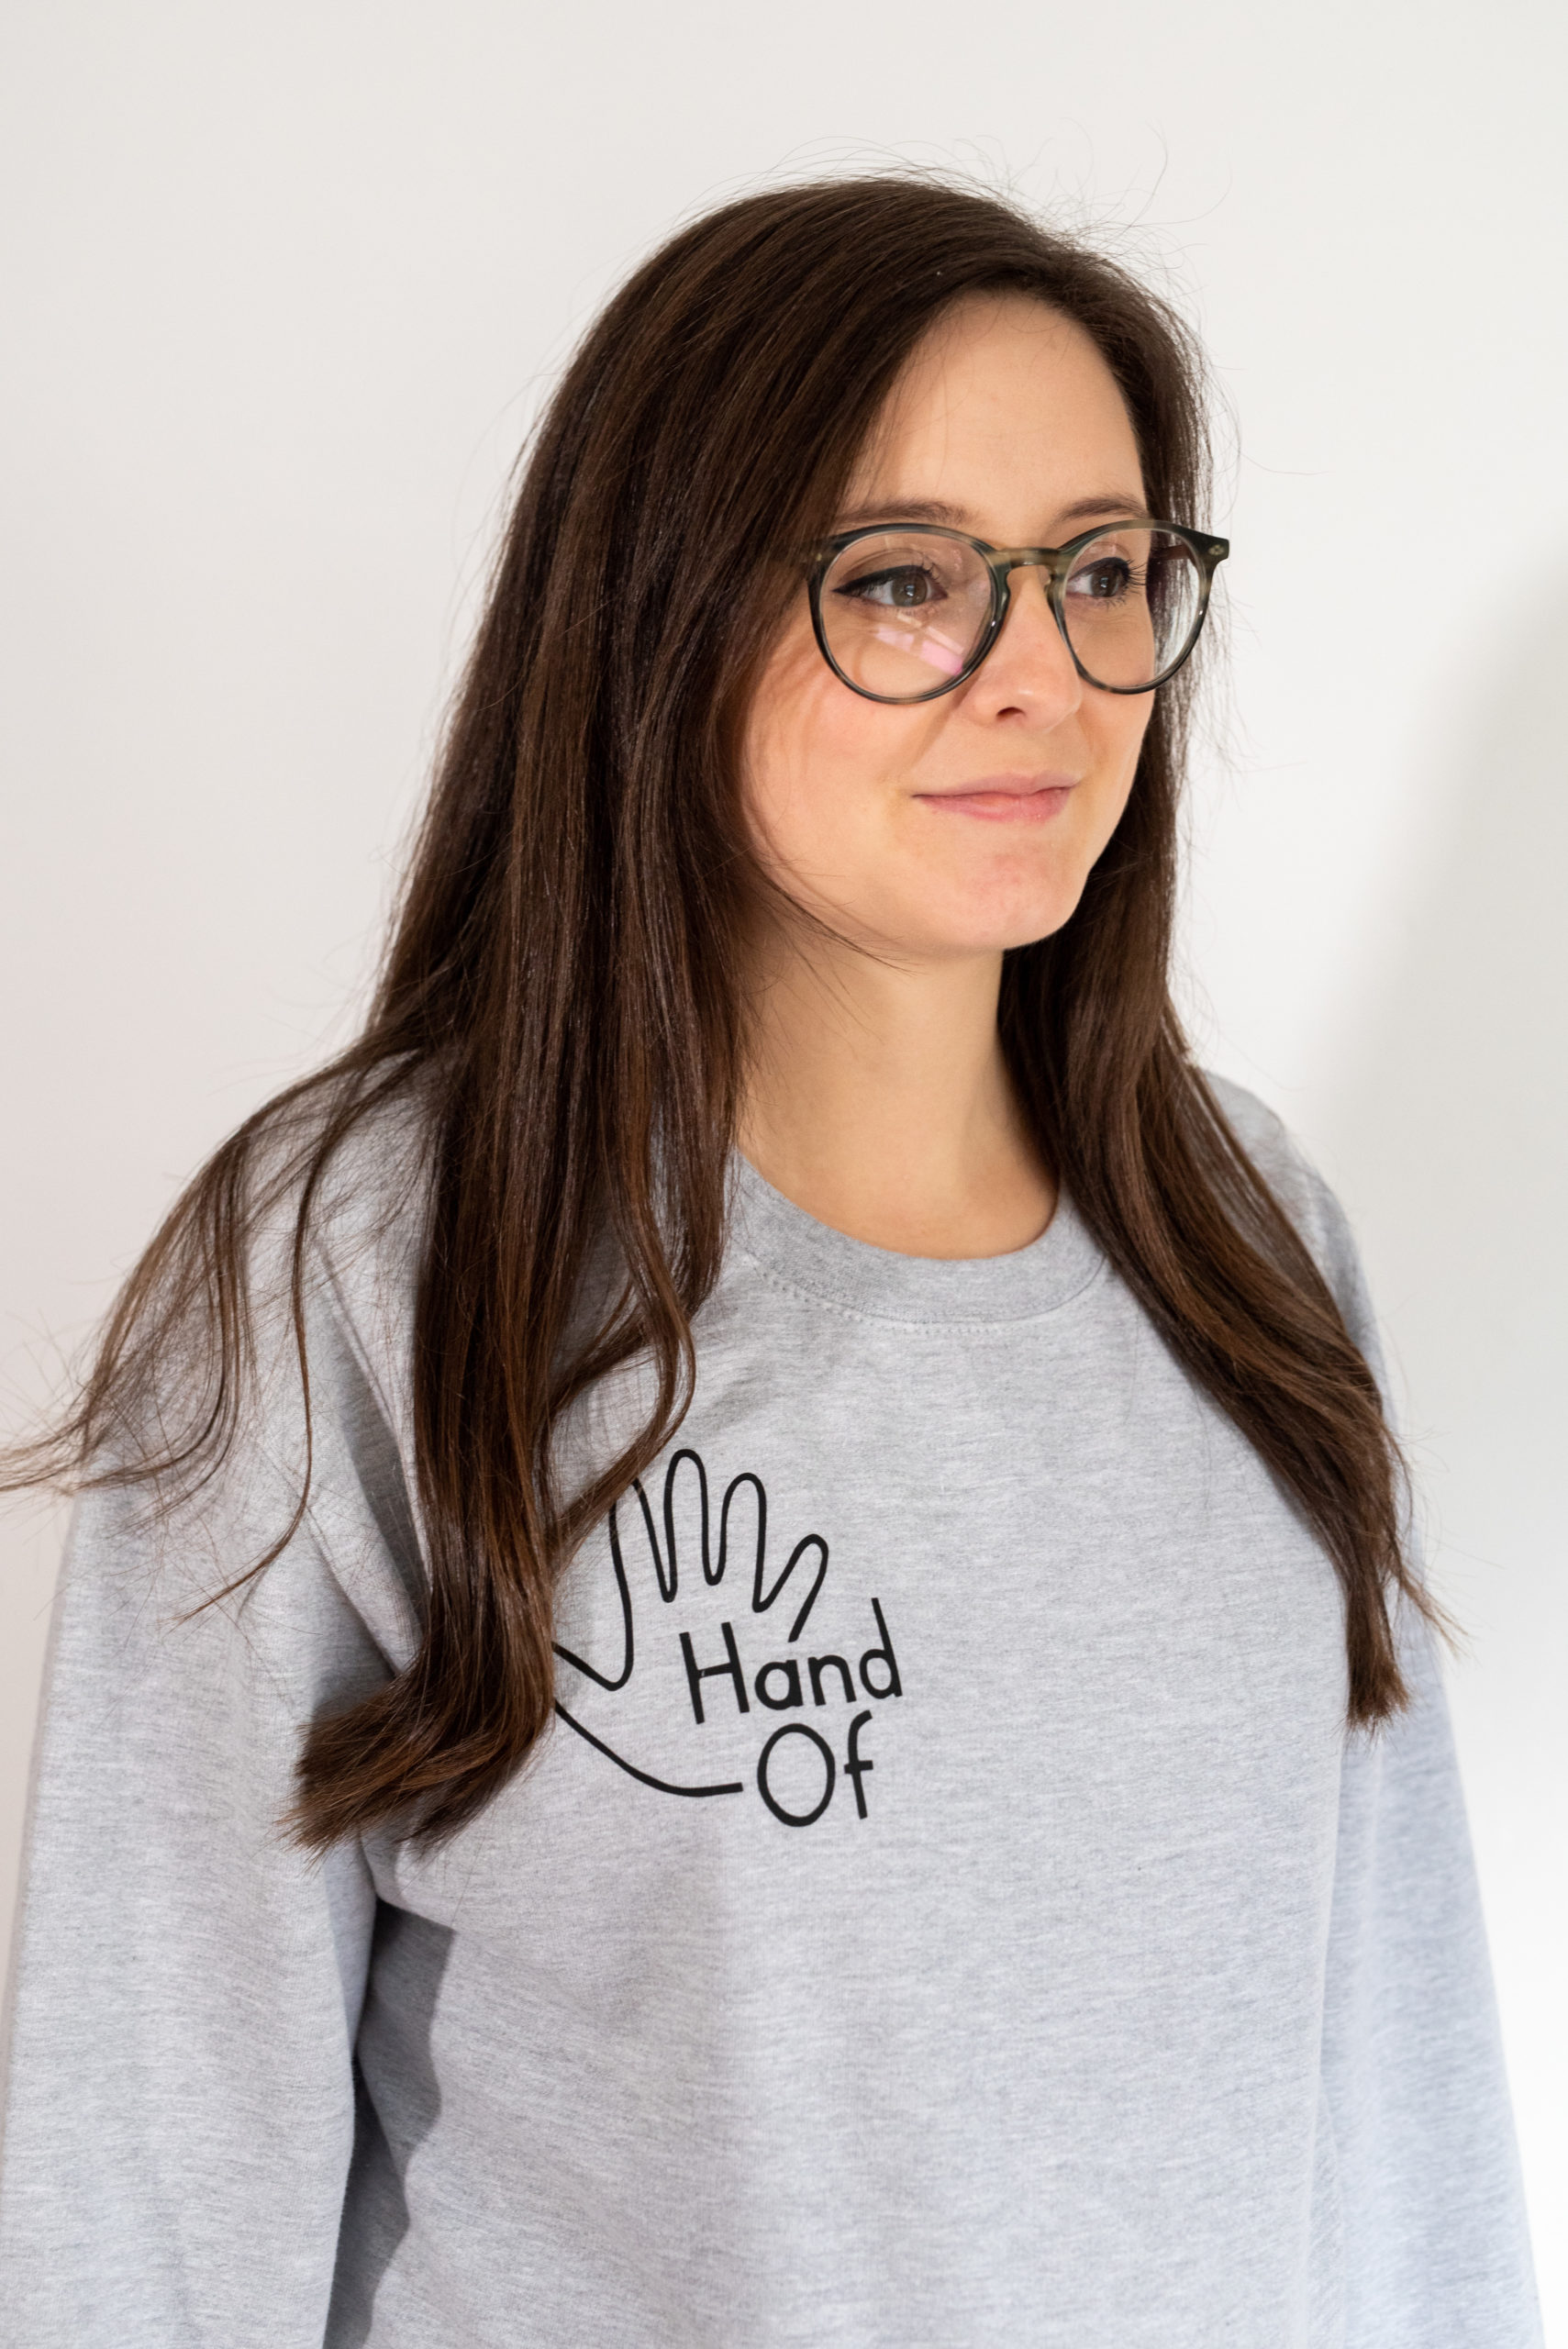 Hand Of jumper in grey, modelled by Meghan Lilleyman.